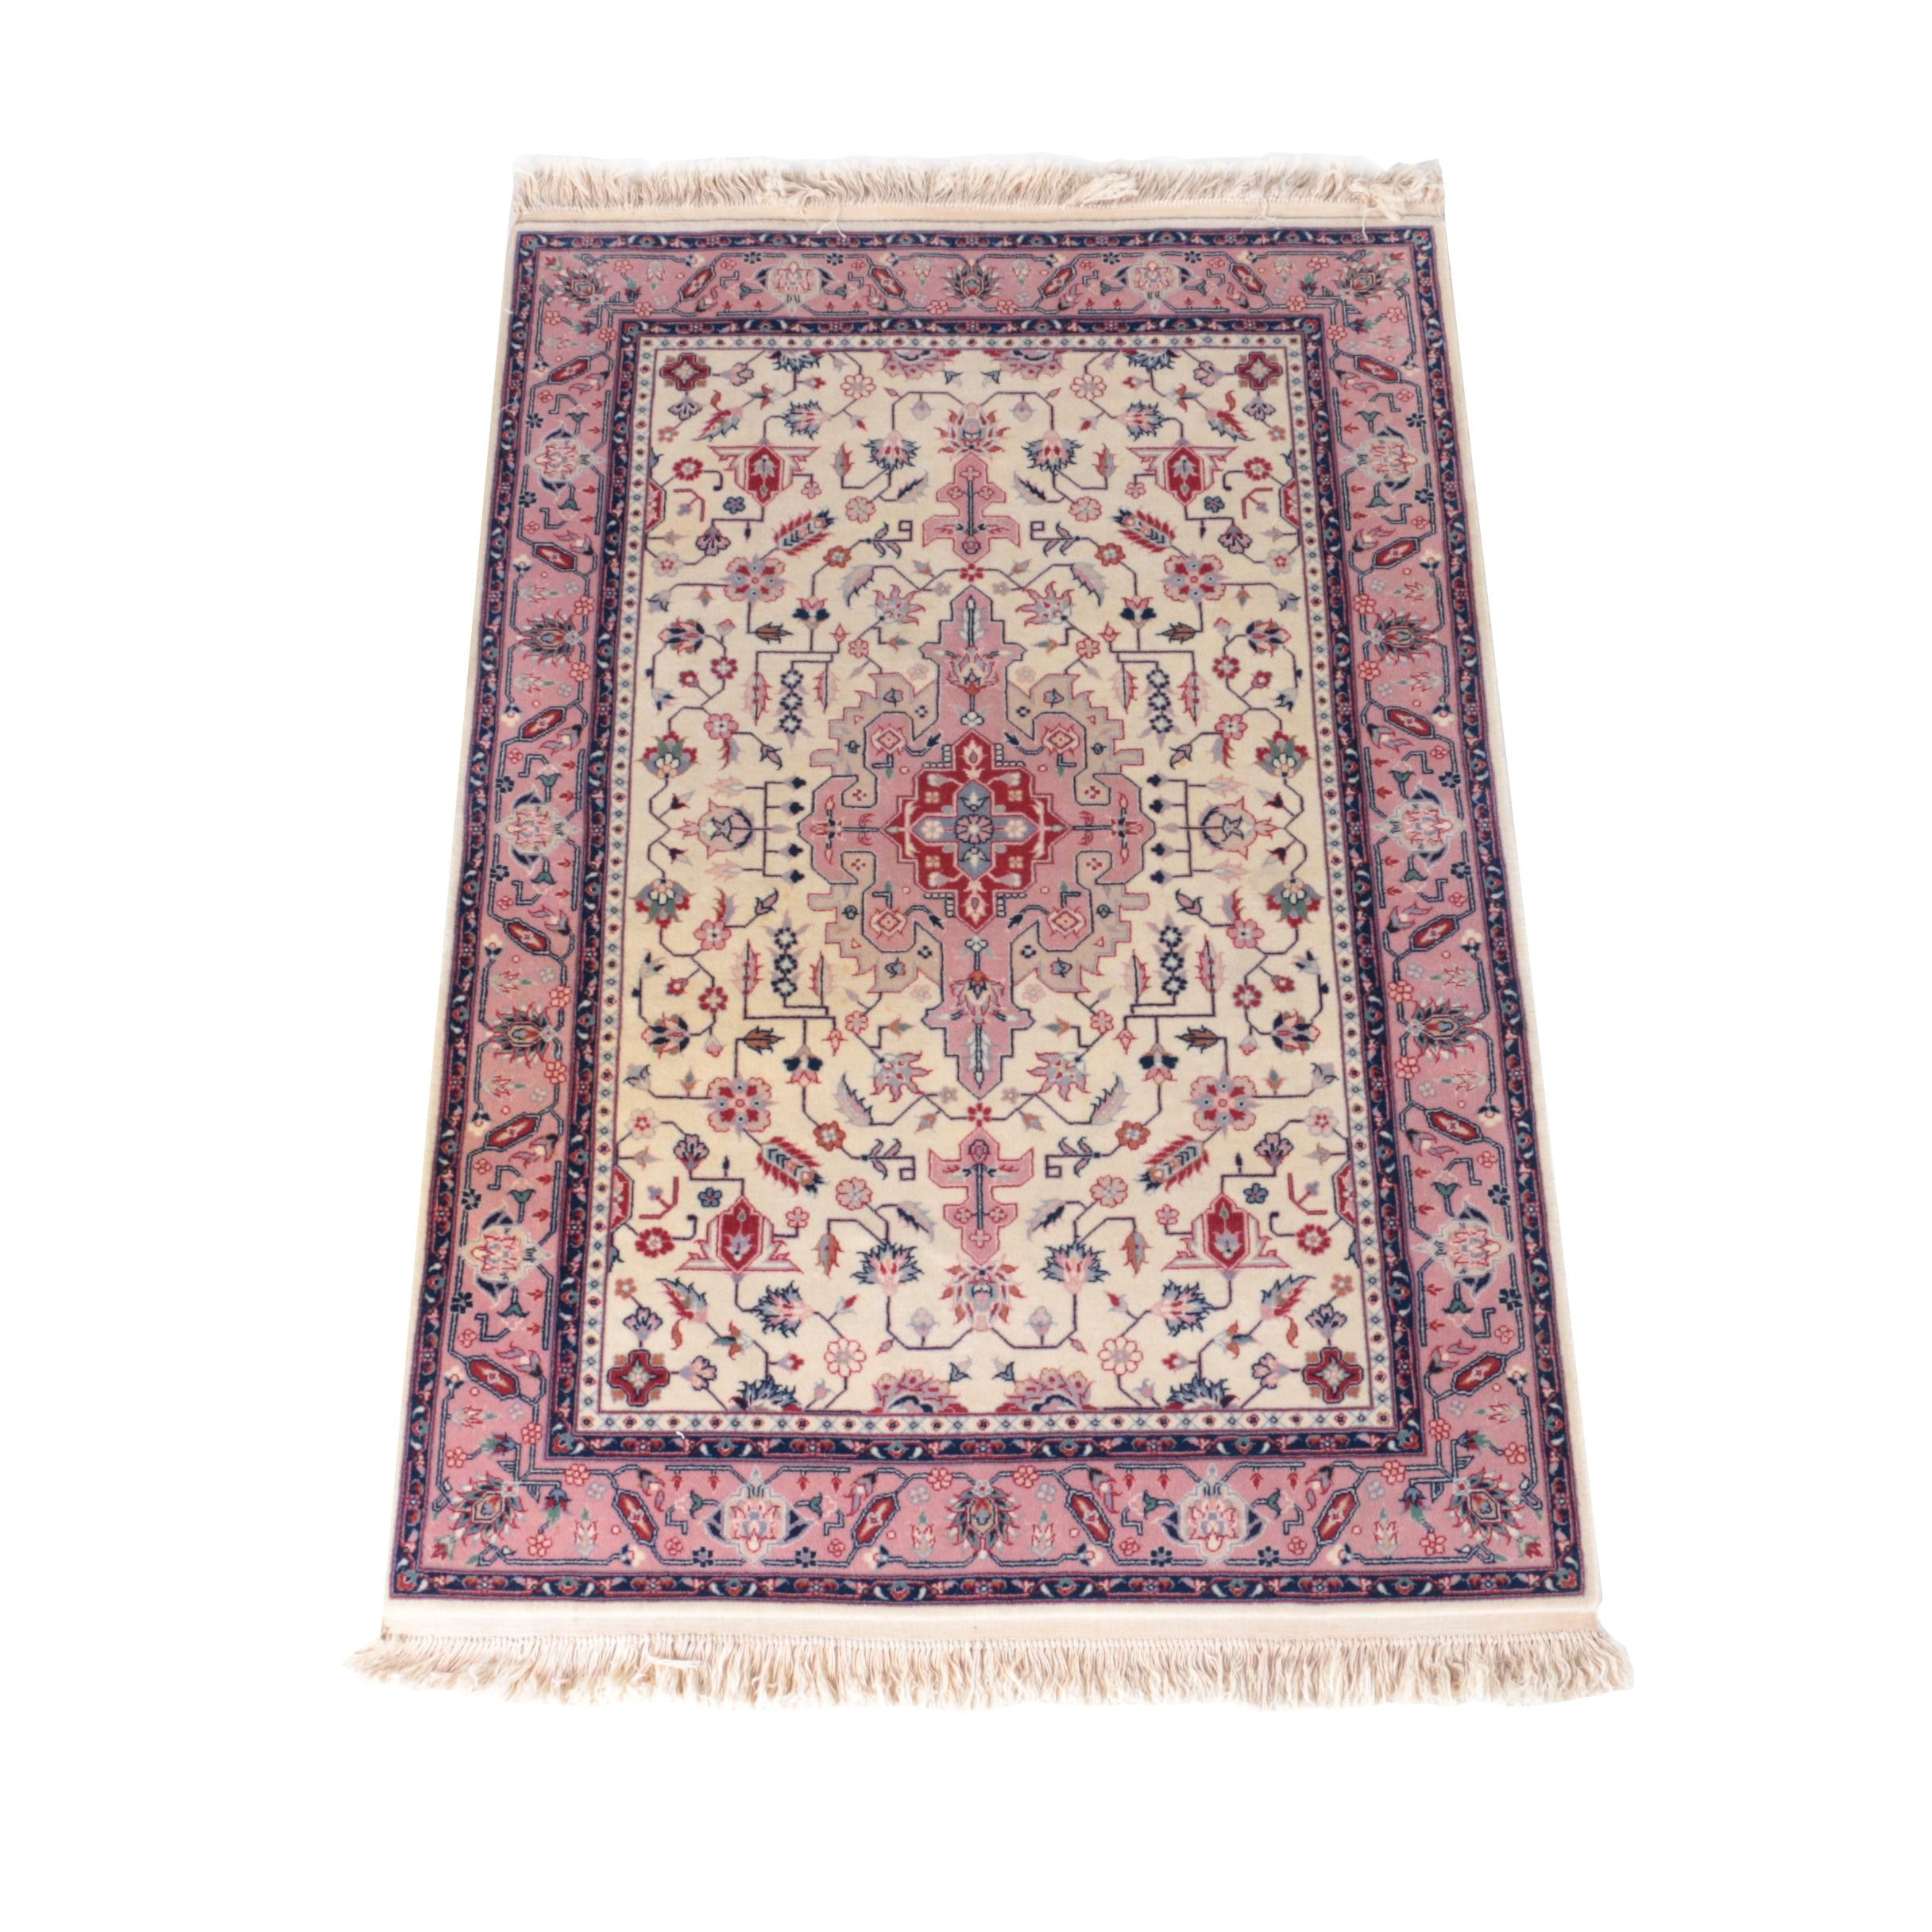 Hand-Knotted Sino-Persian Area Rug